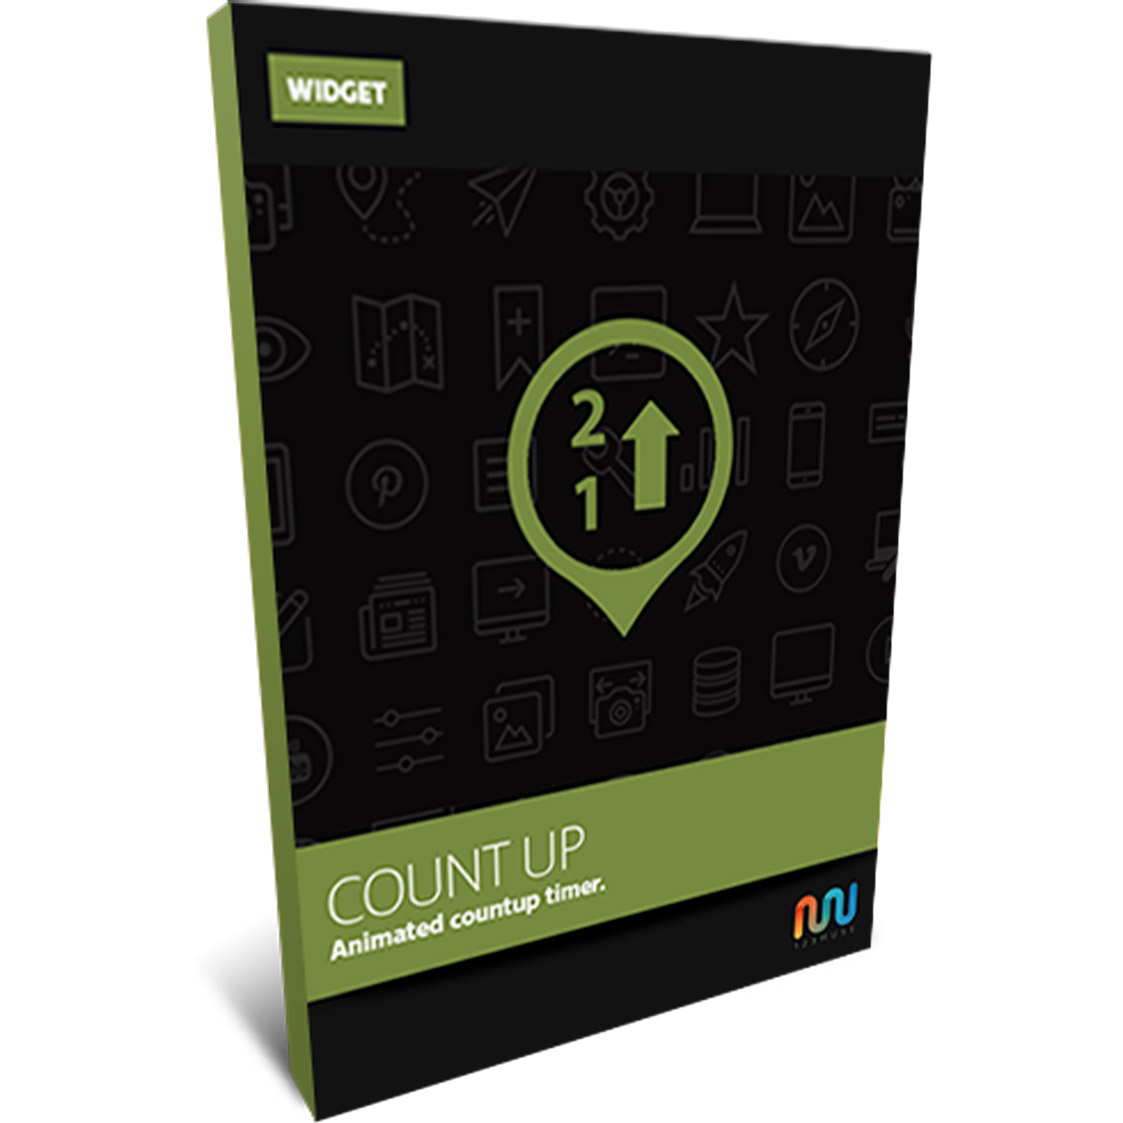 Animated Count Up